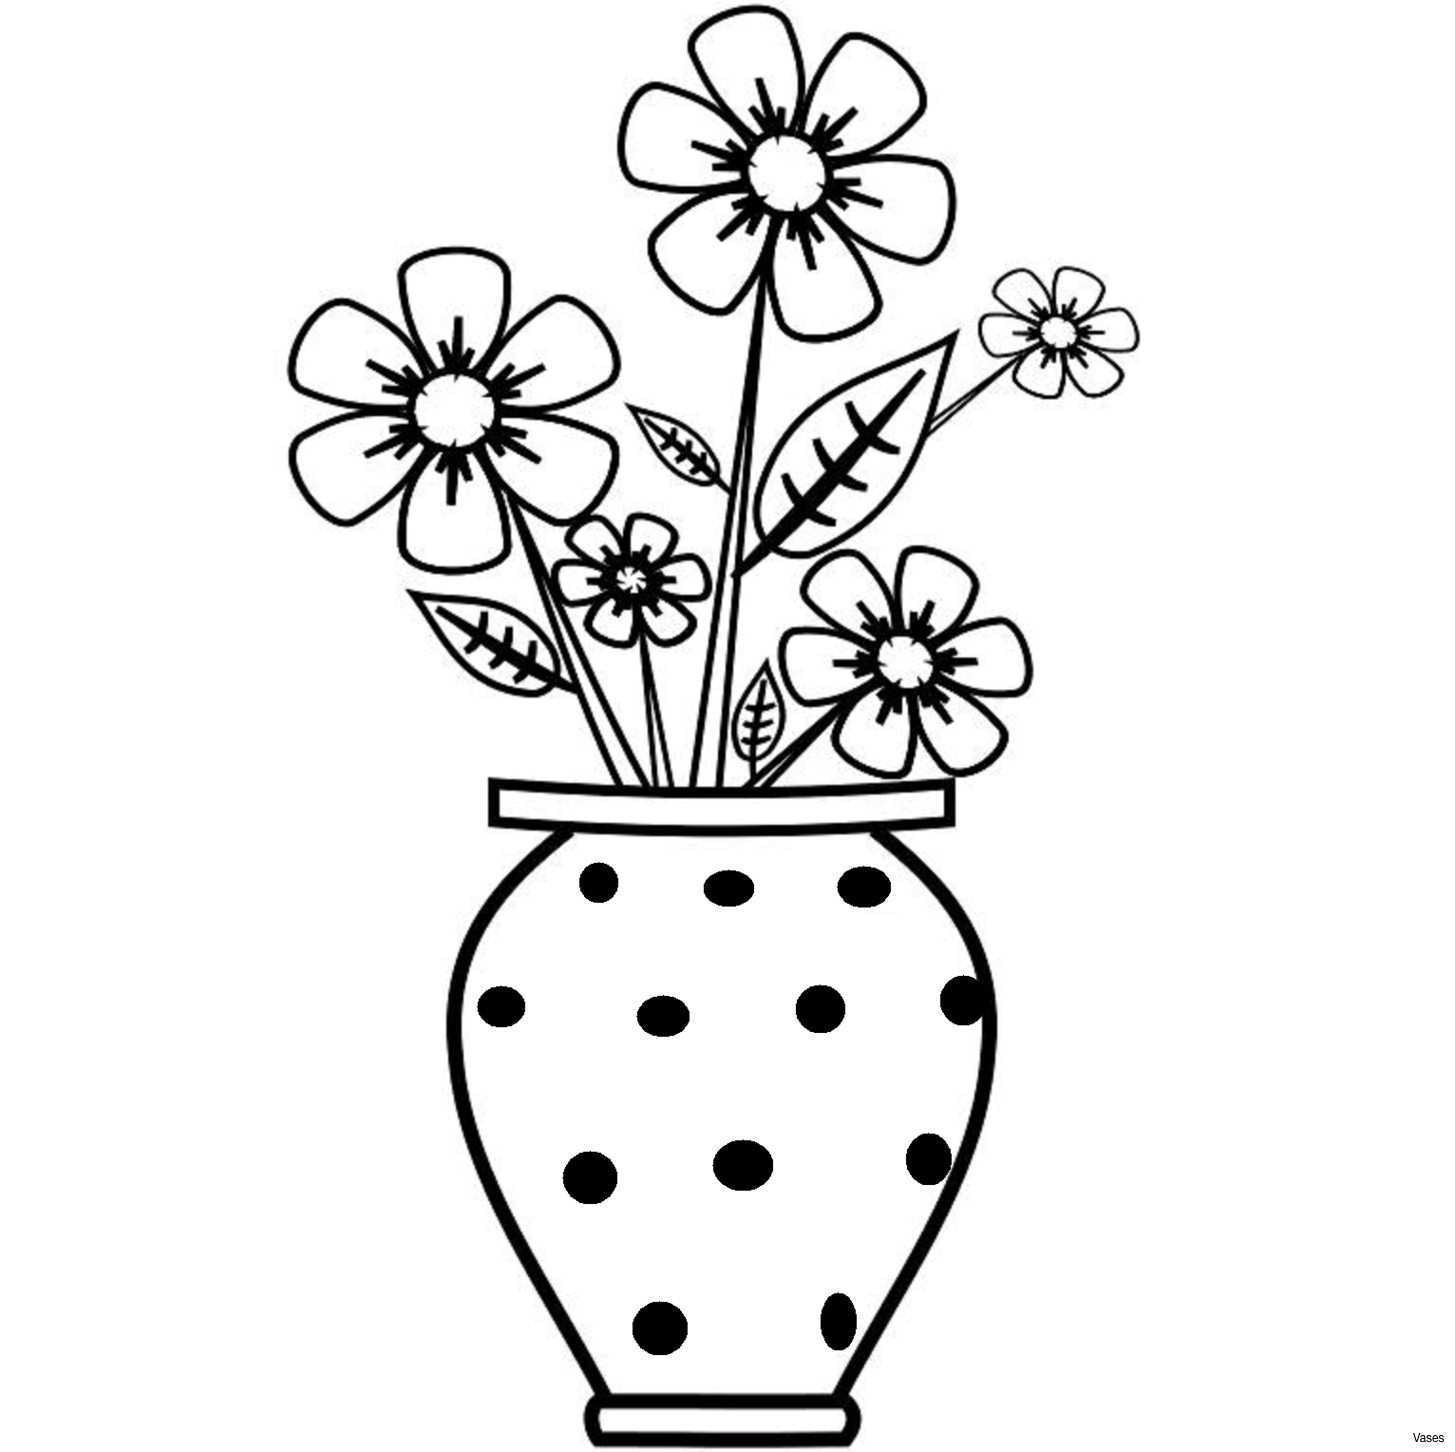 Vase with Cover Of Black and White Art Inspirational Will Clipart Colored Flower Vase Regarding Black and White Art Inspirational Will Clipart Colored Flower Vase Clip Arth Vases Art Infoi 0d